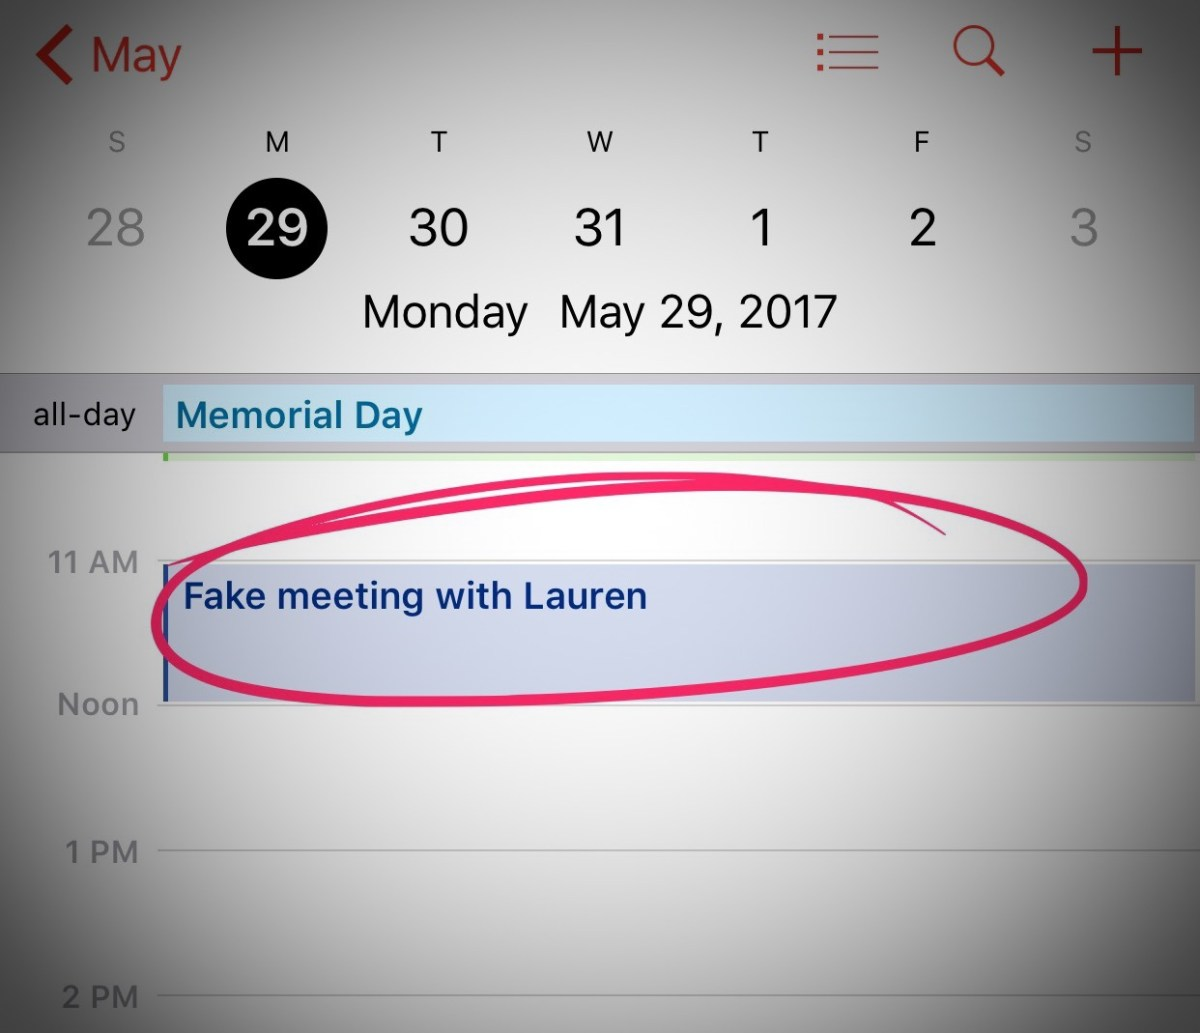 A fake appointment with Lauren